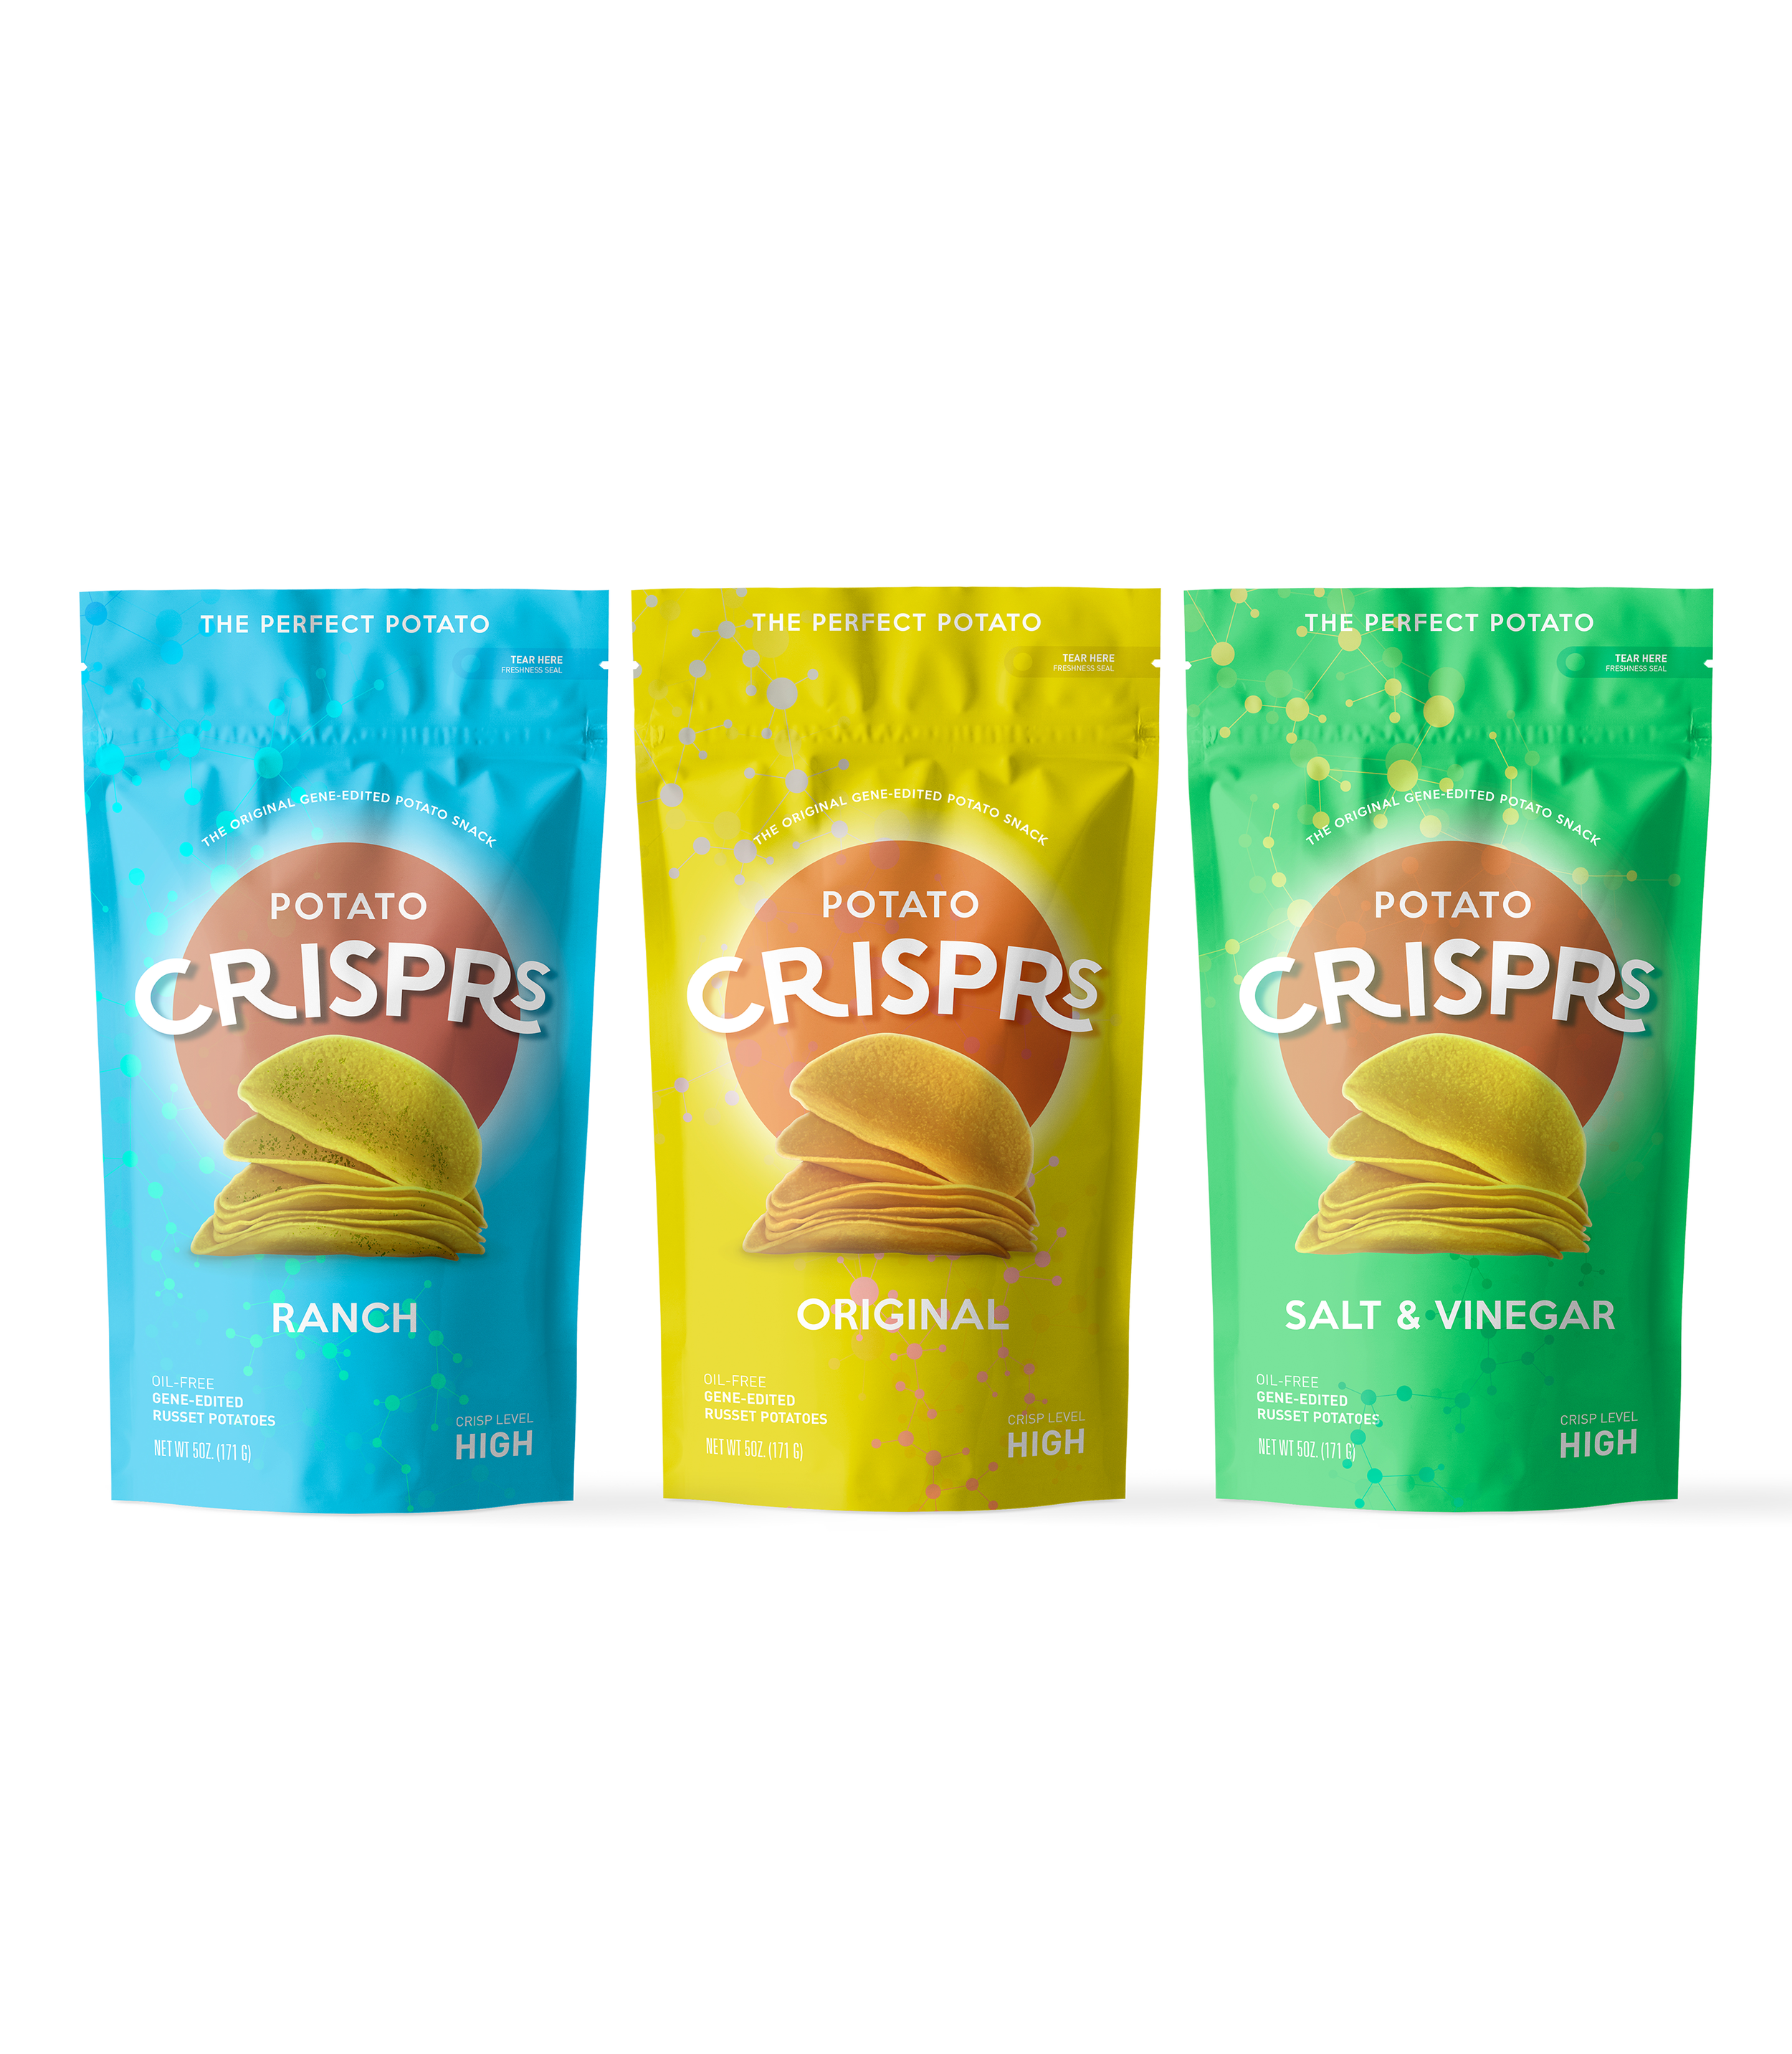 Potato CRISPRs    Potato Crisprs are made from the Perfect Potato, gene edited with Crispr technology to give you everything you ever wanted in a salty snack, without any of the stuff you don't.